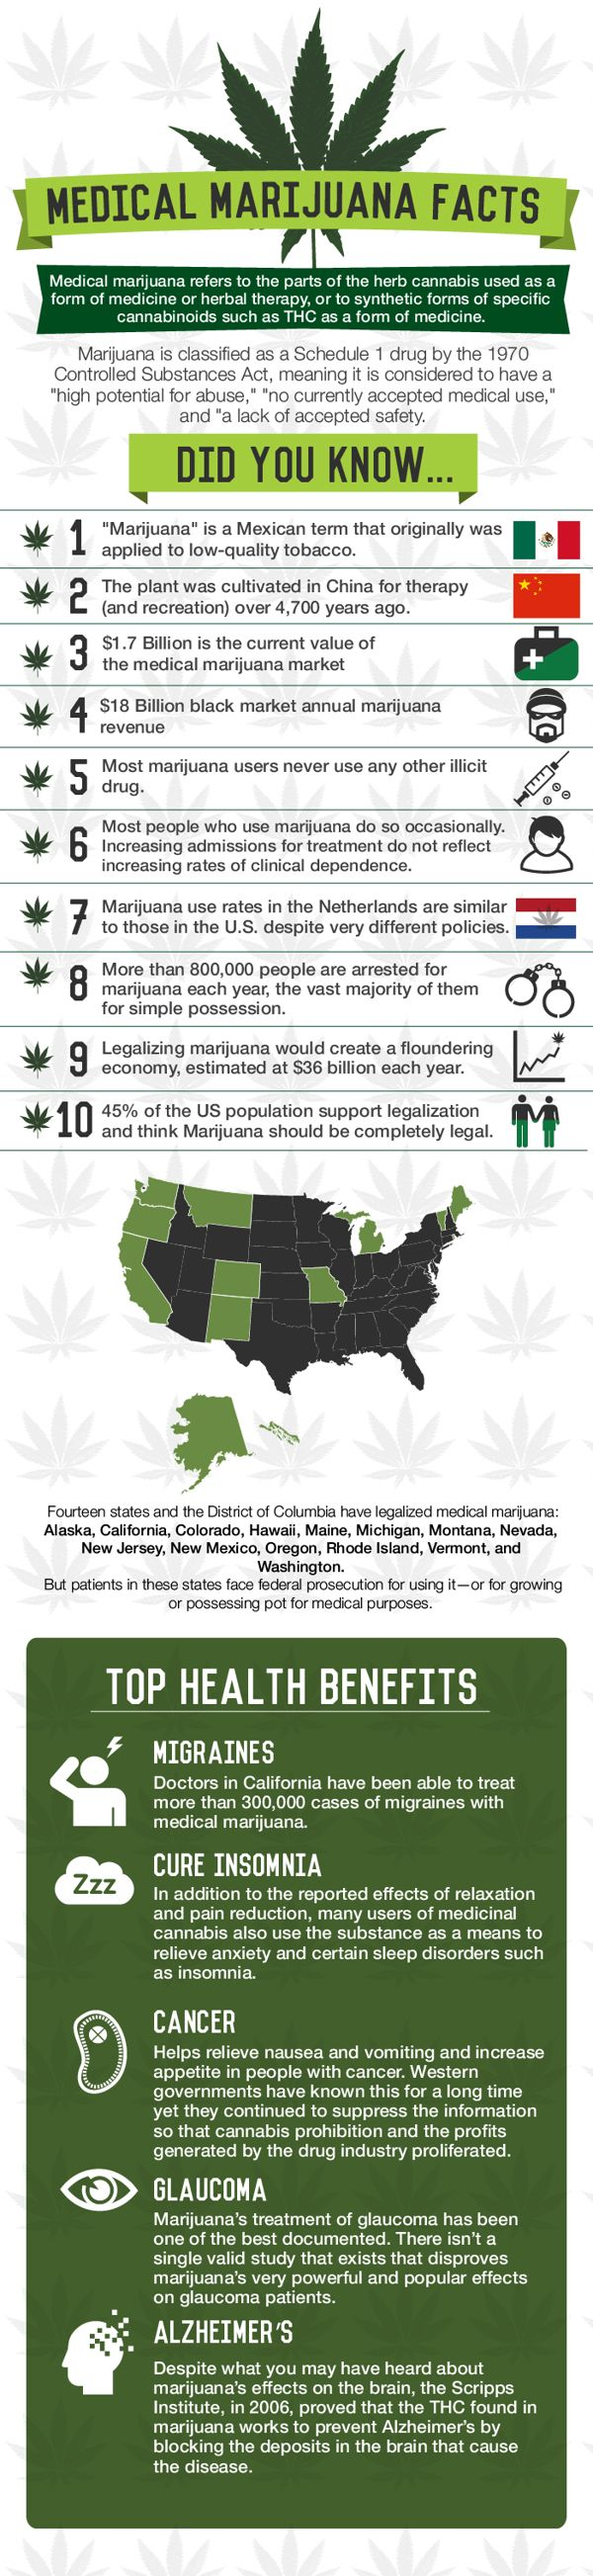 Medical Marijuana Facts by Bogdan Răuţă, via Behance